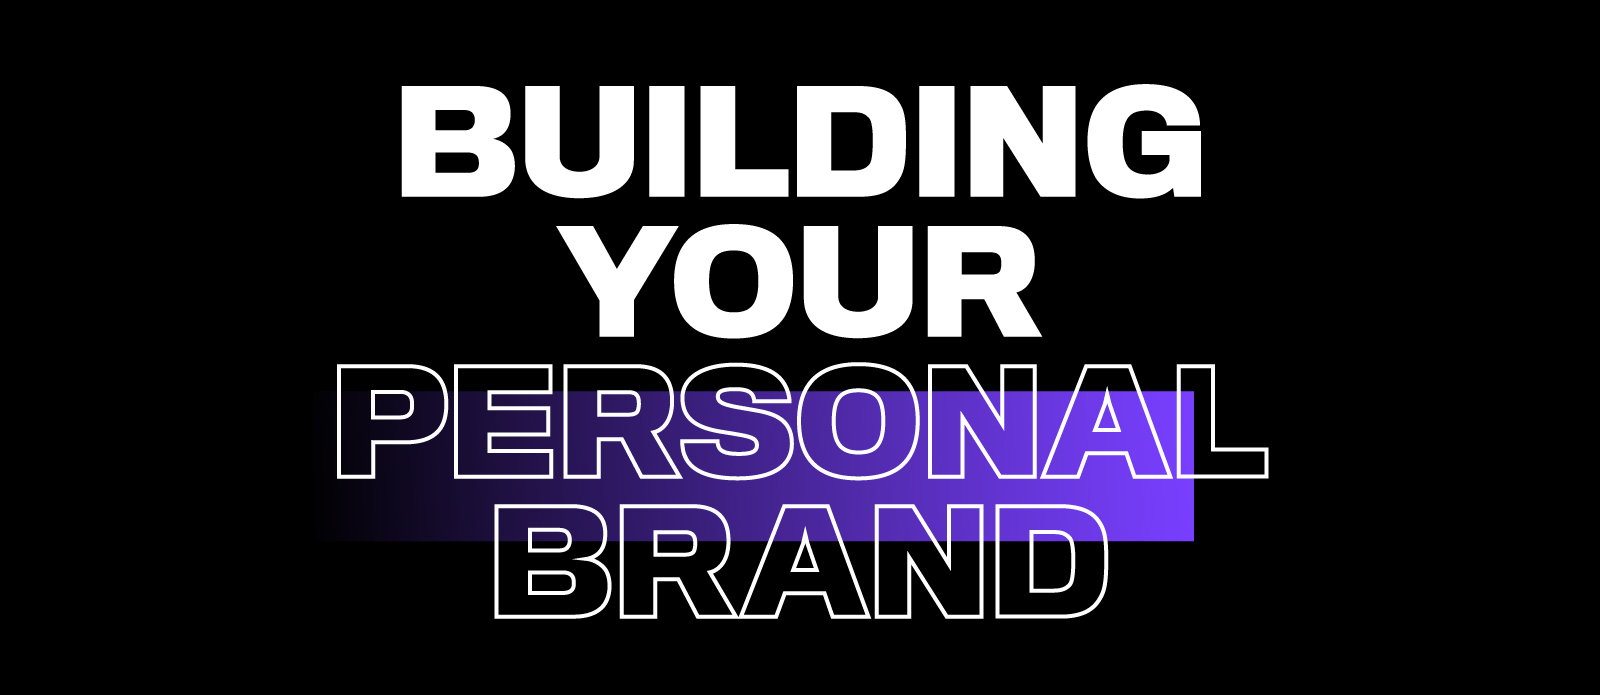 Building your Personal Brand - Podcast with Annelise Worn